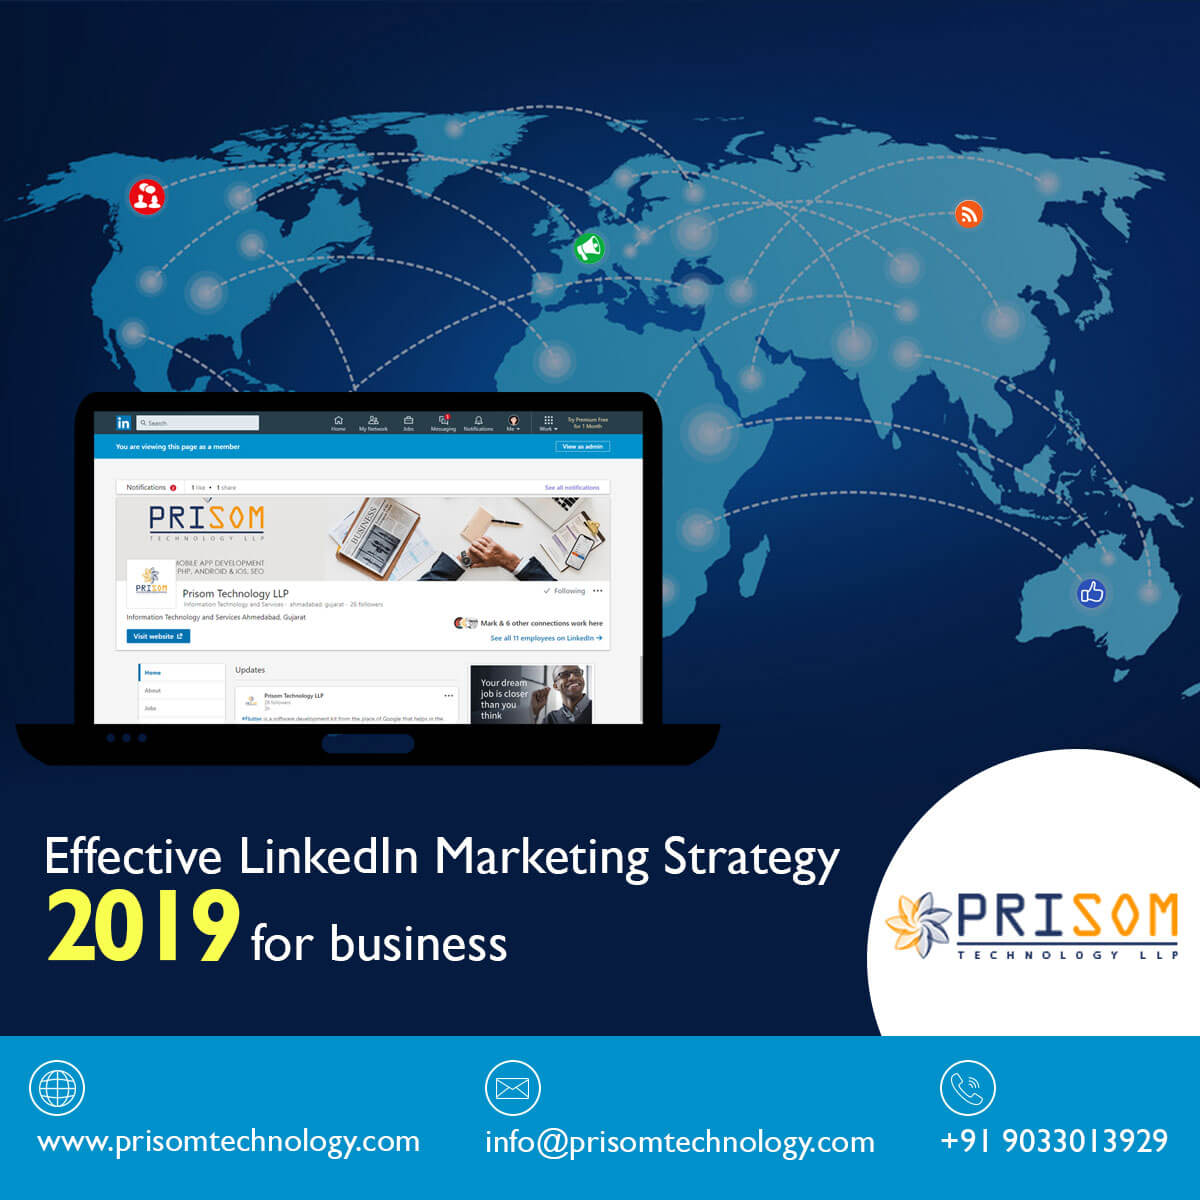 Effective LinkedIn Marketing Strategy 2019 for Business